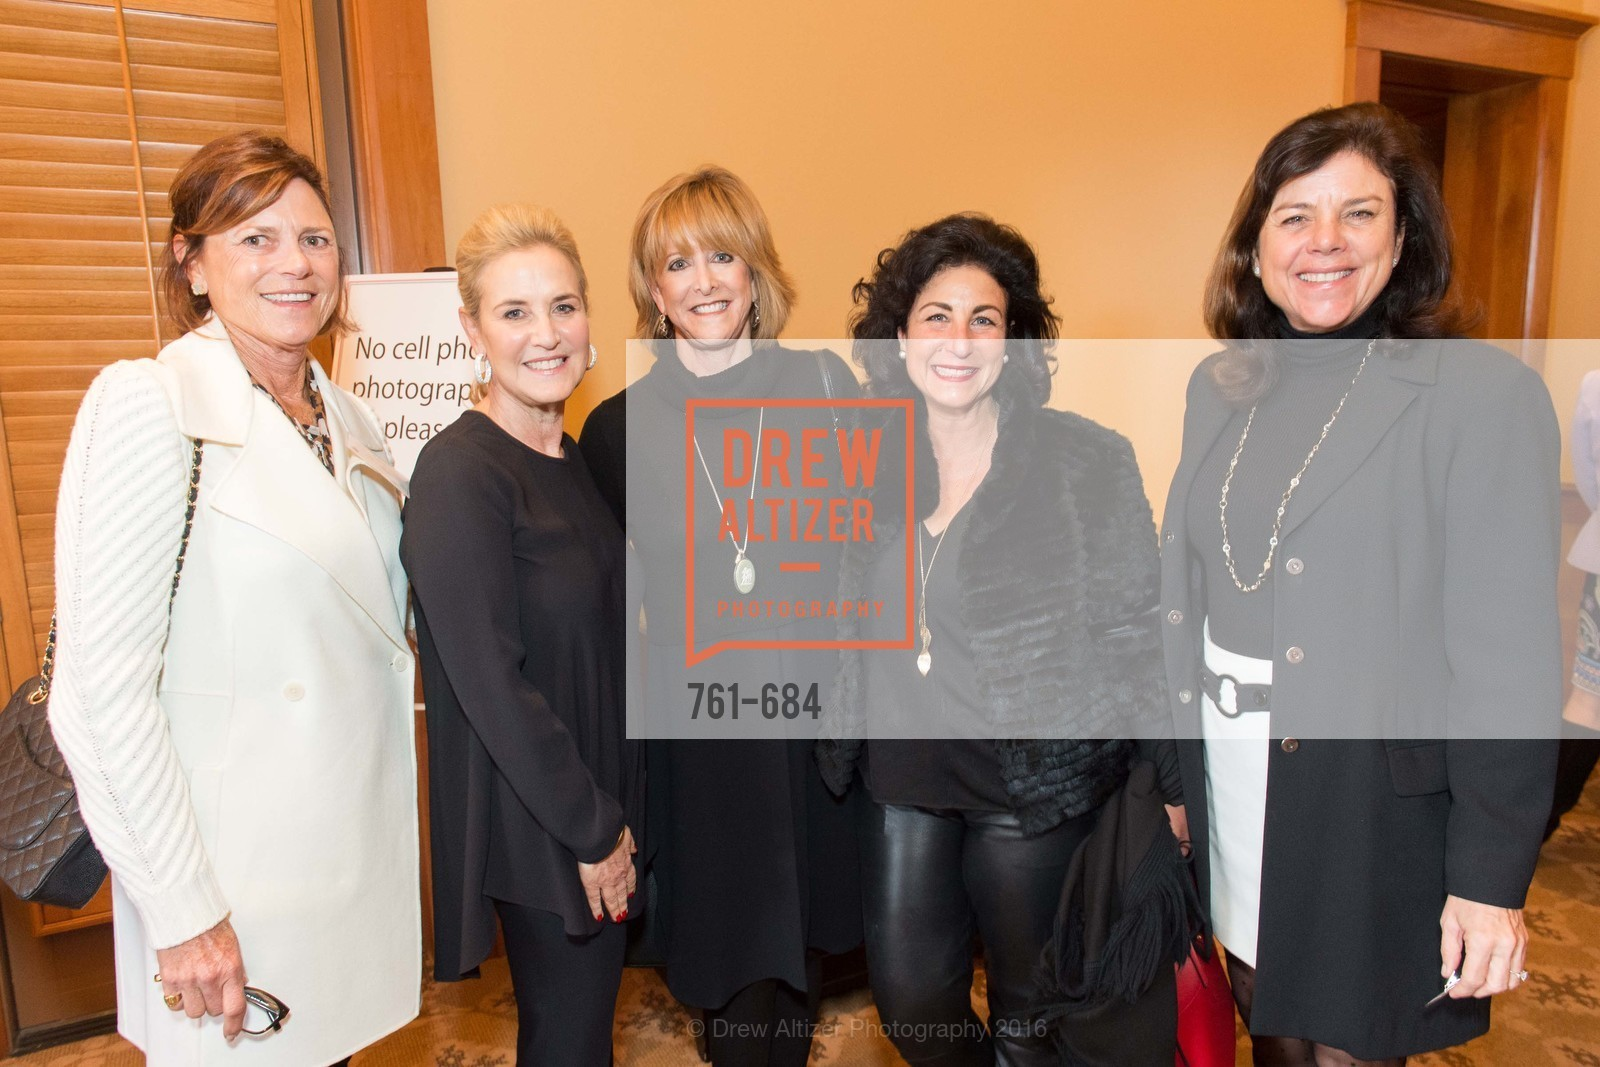 Lisa Troedson, Lisa Goldman, Betsy Matteson, Jennifer Jeffries, Connie Ring, Under One Umbrella, Sharon Heights Golf and Country Club, January 13th, 2016,Drew Altizer, Drew Altizer Photography, full-service agency, private events, San Francisco photographer, photographer california